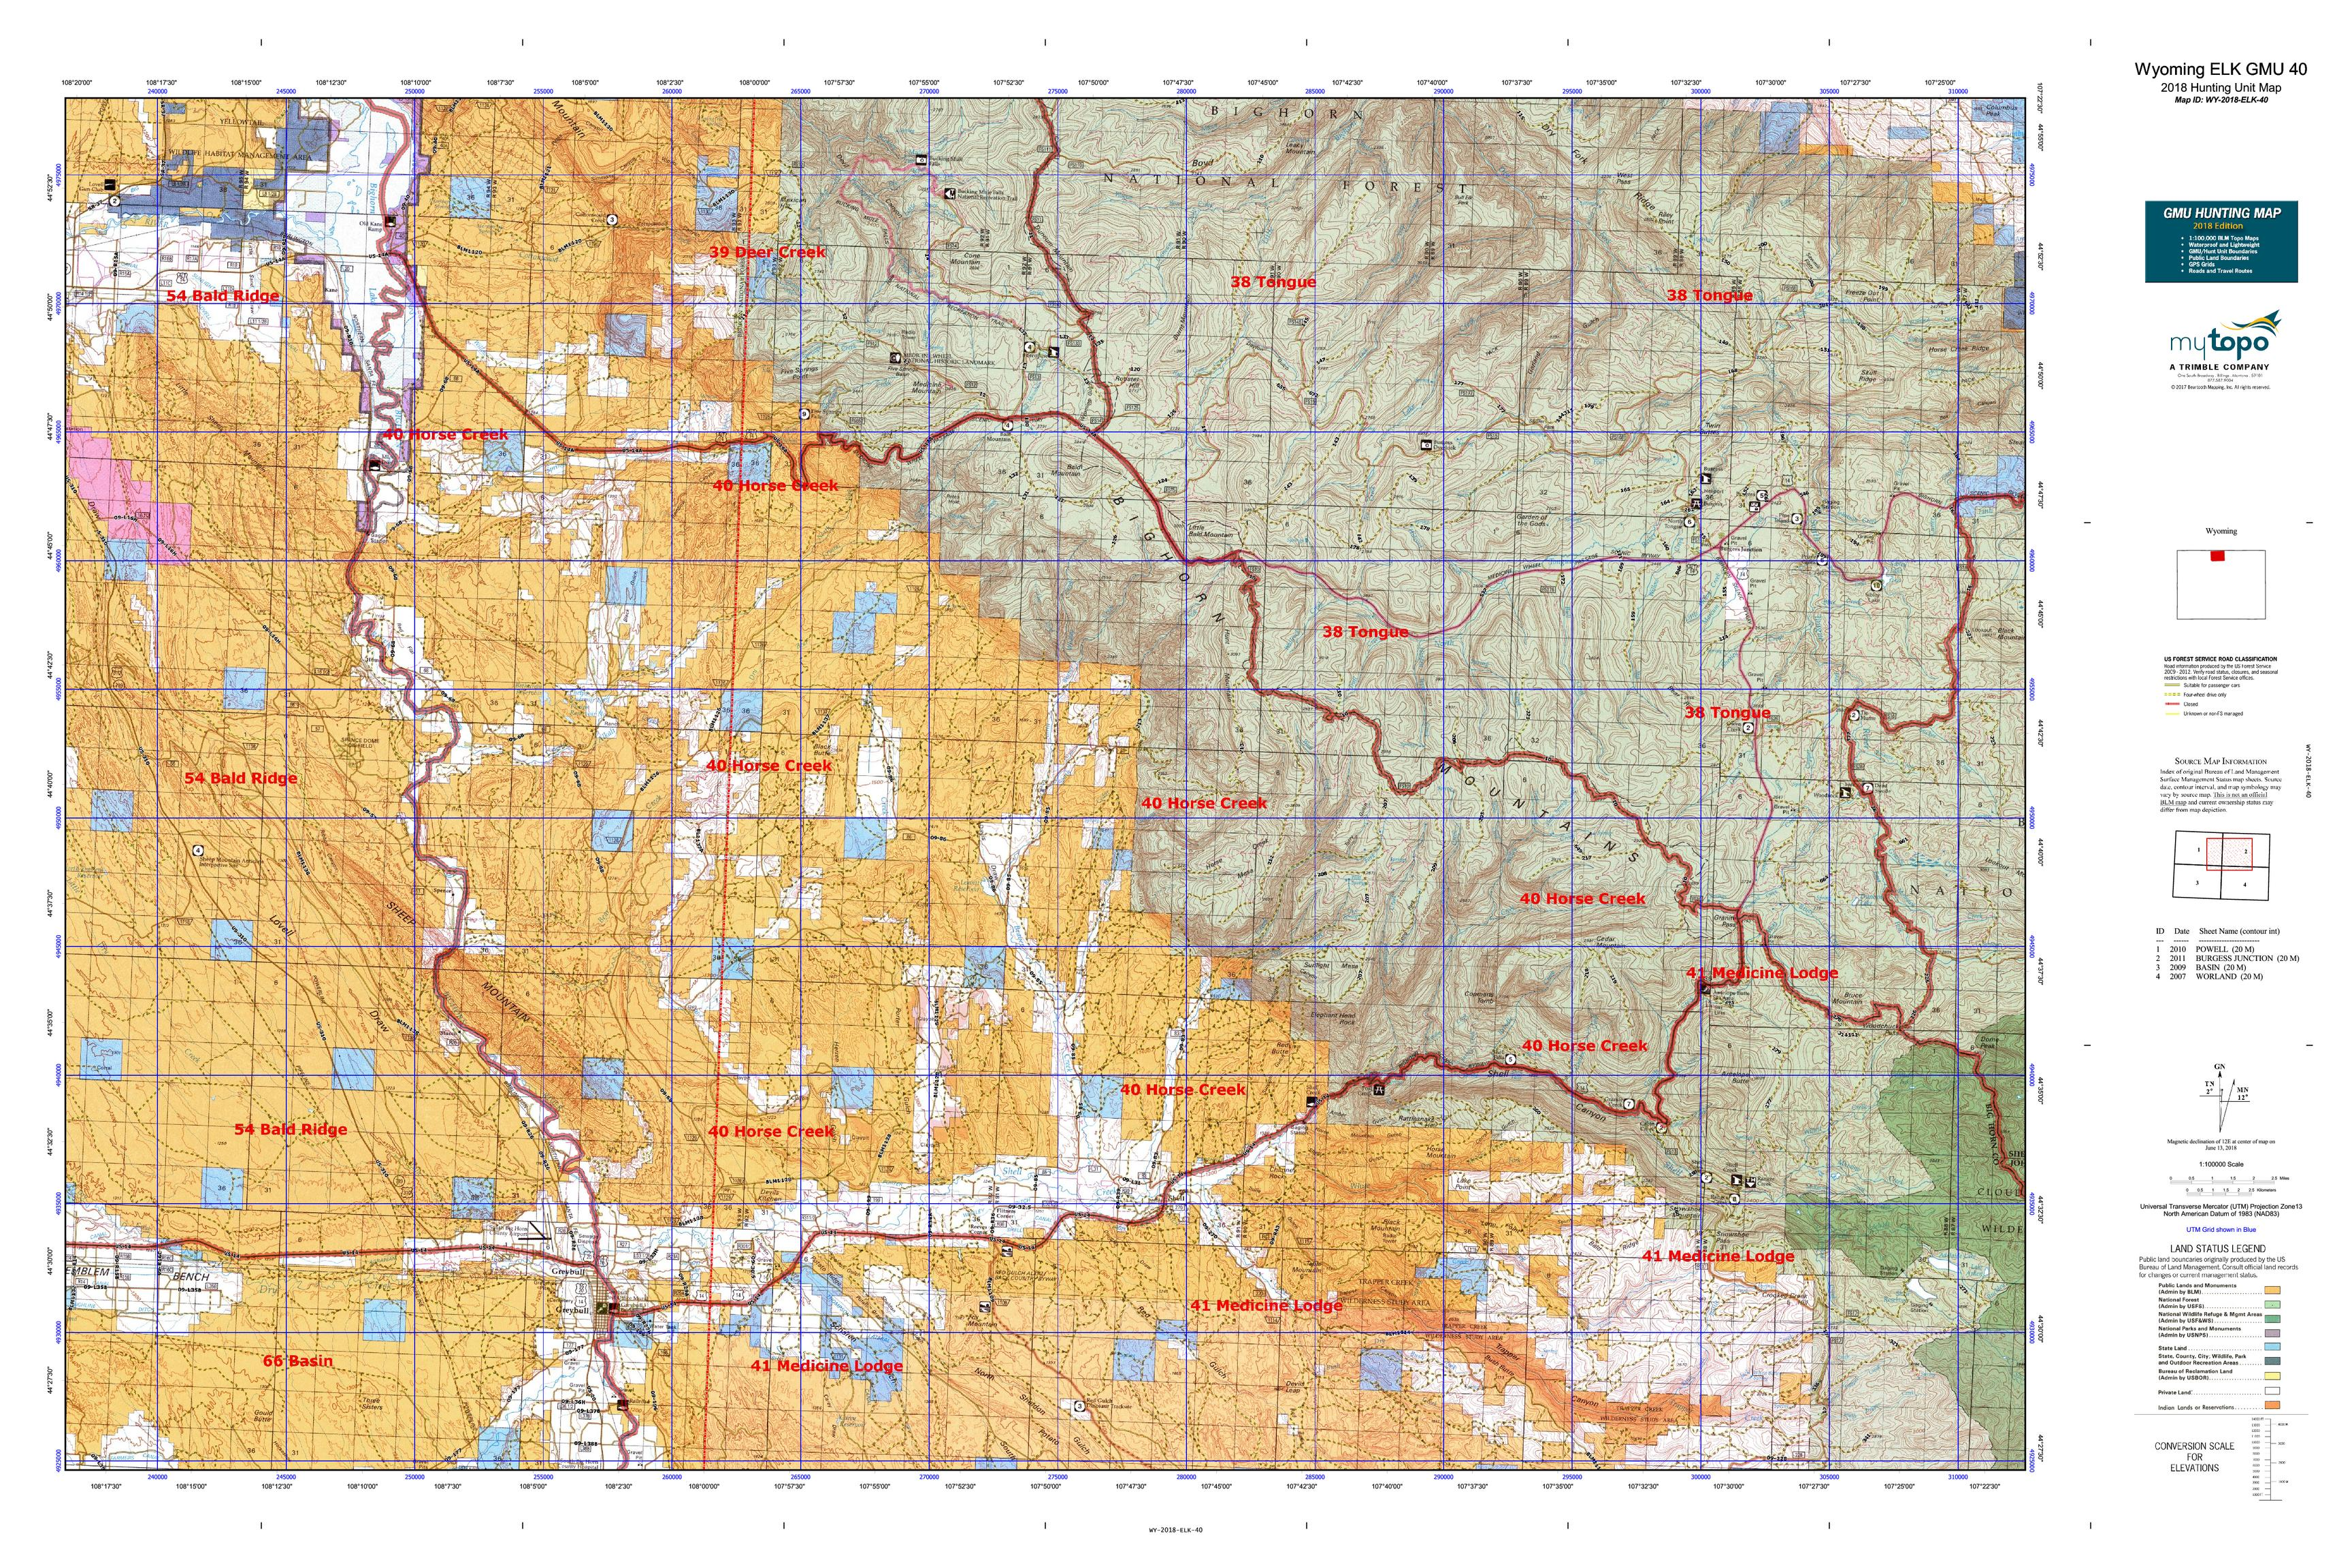 Wyoming ELK GMU 40 Map | MyTopo